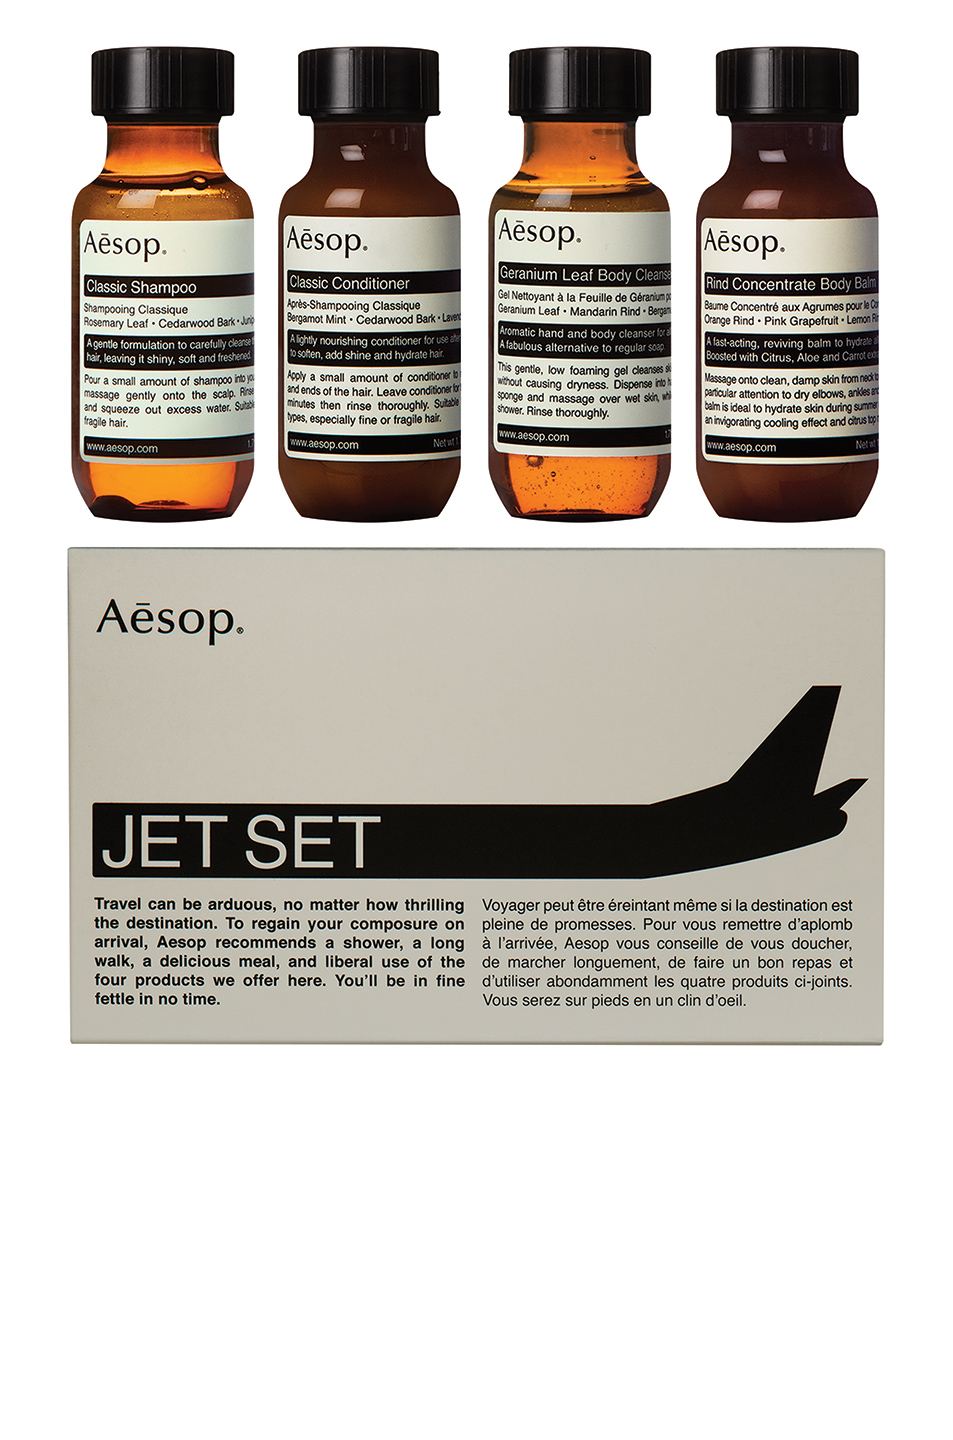 JET SET KIT by AESOP